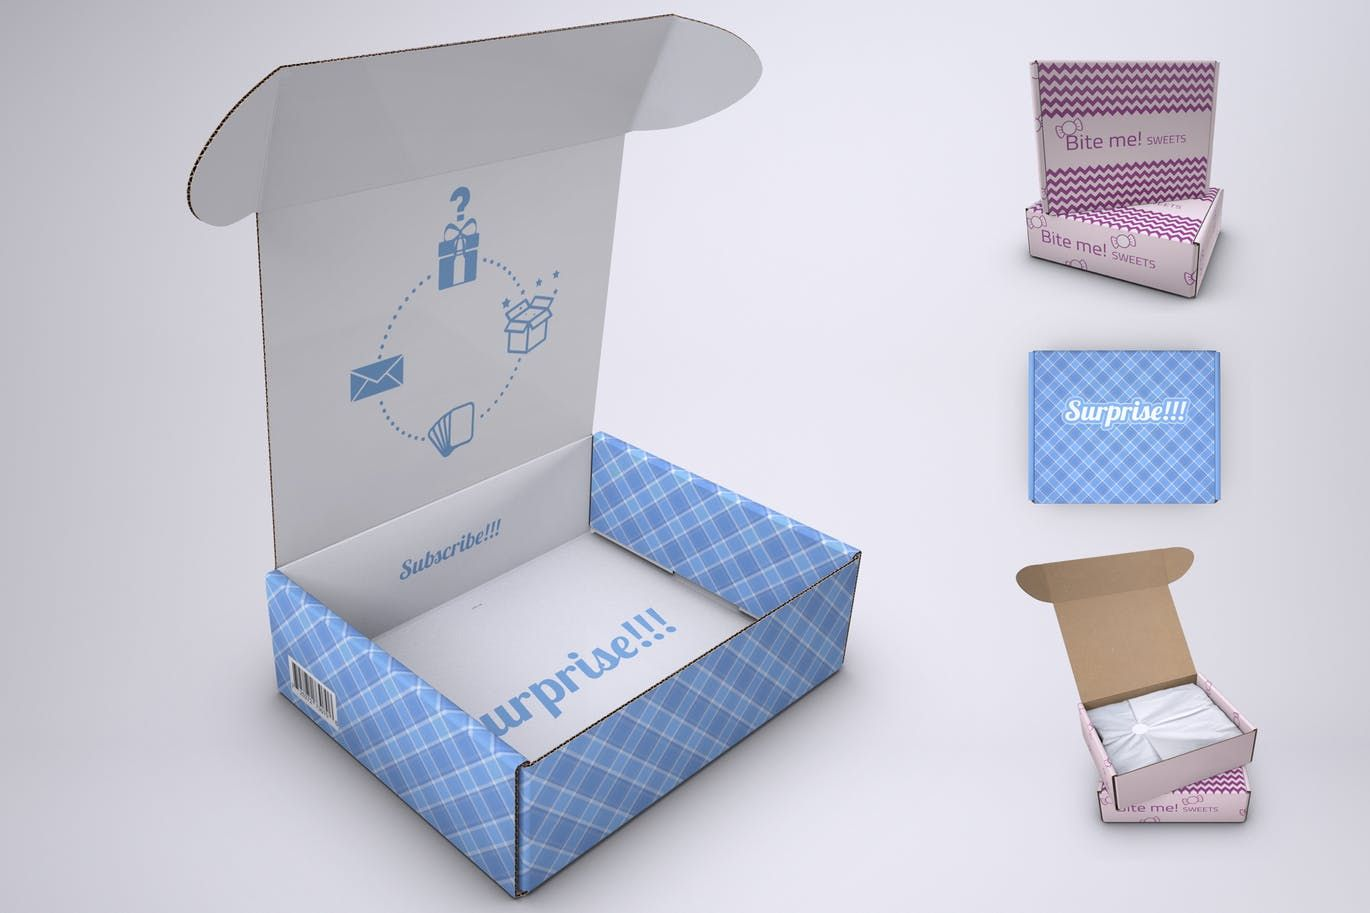 Download Subscription Box Mock Up By Sanchi477 On Envato Elements Subscription Box Design Psd Template Free Subscription Box